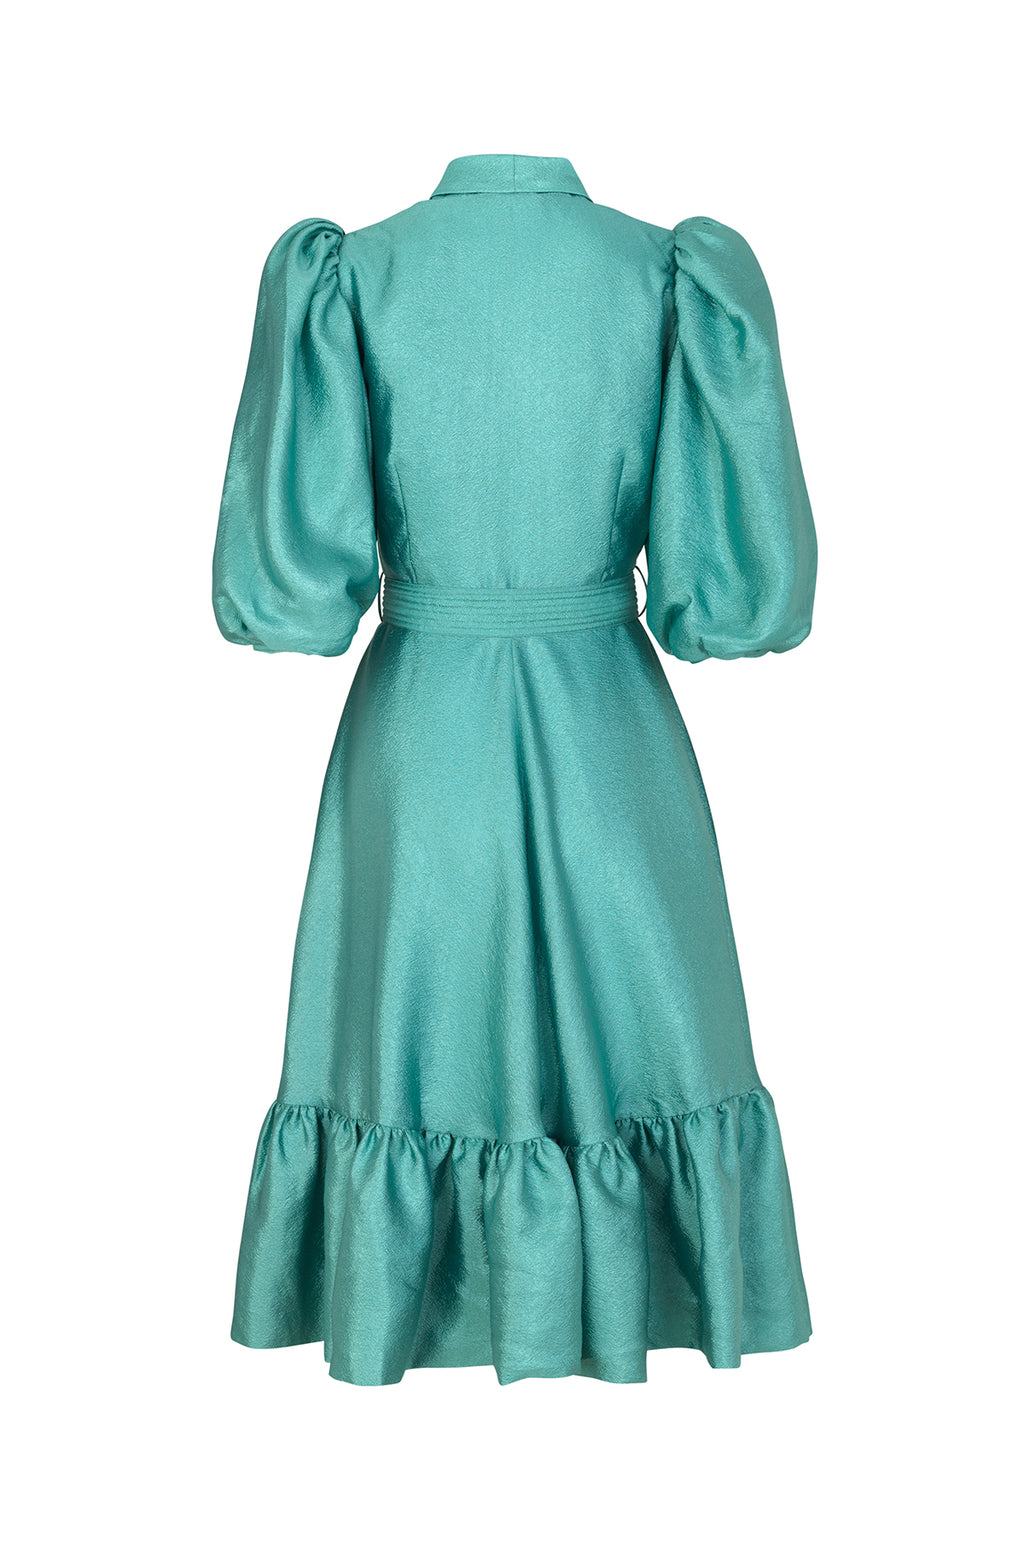 Chinie Dress in Aqua